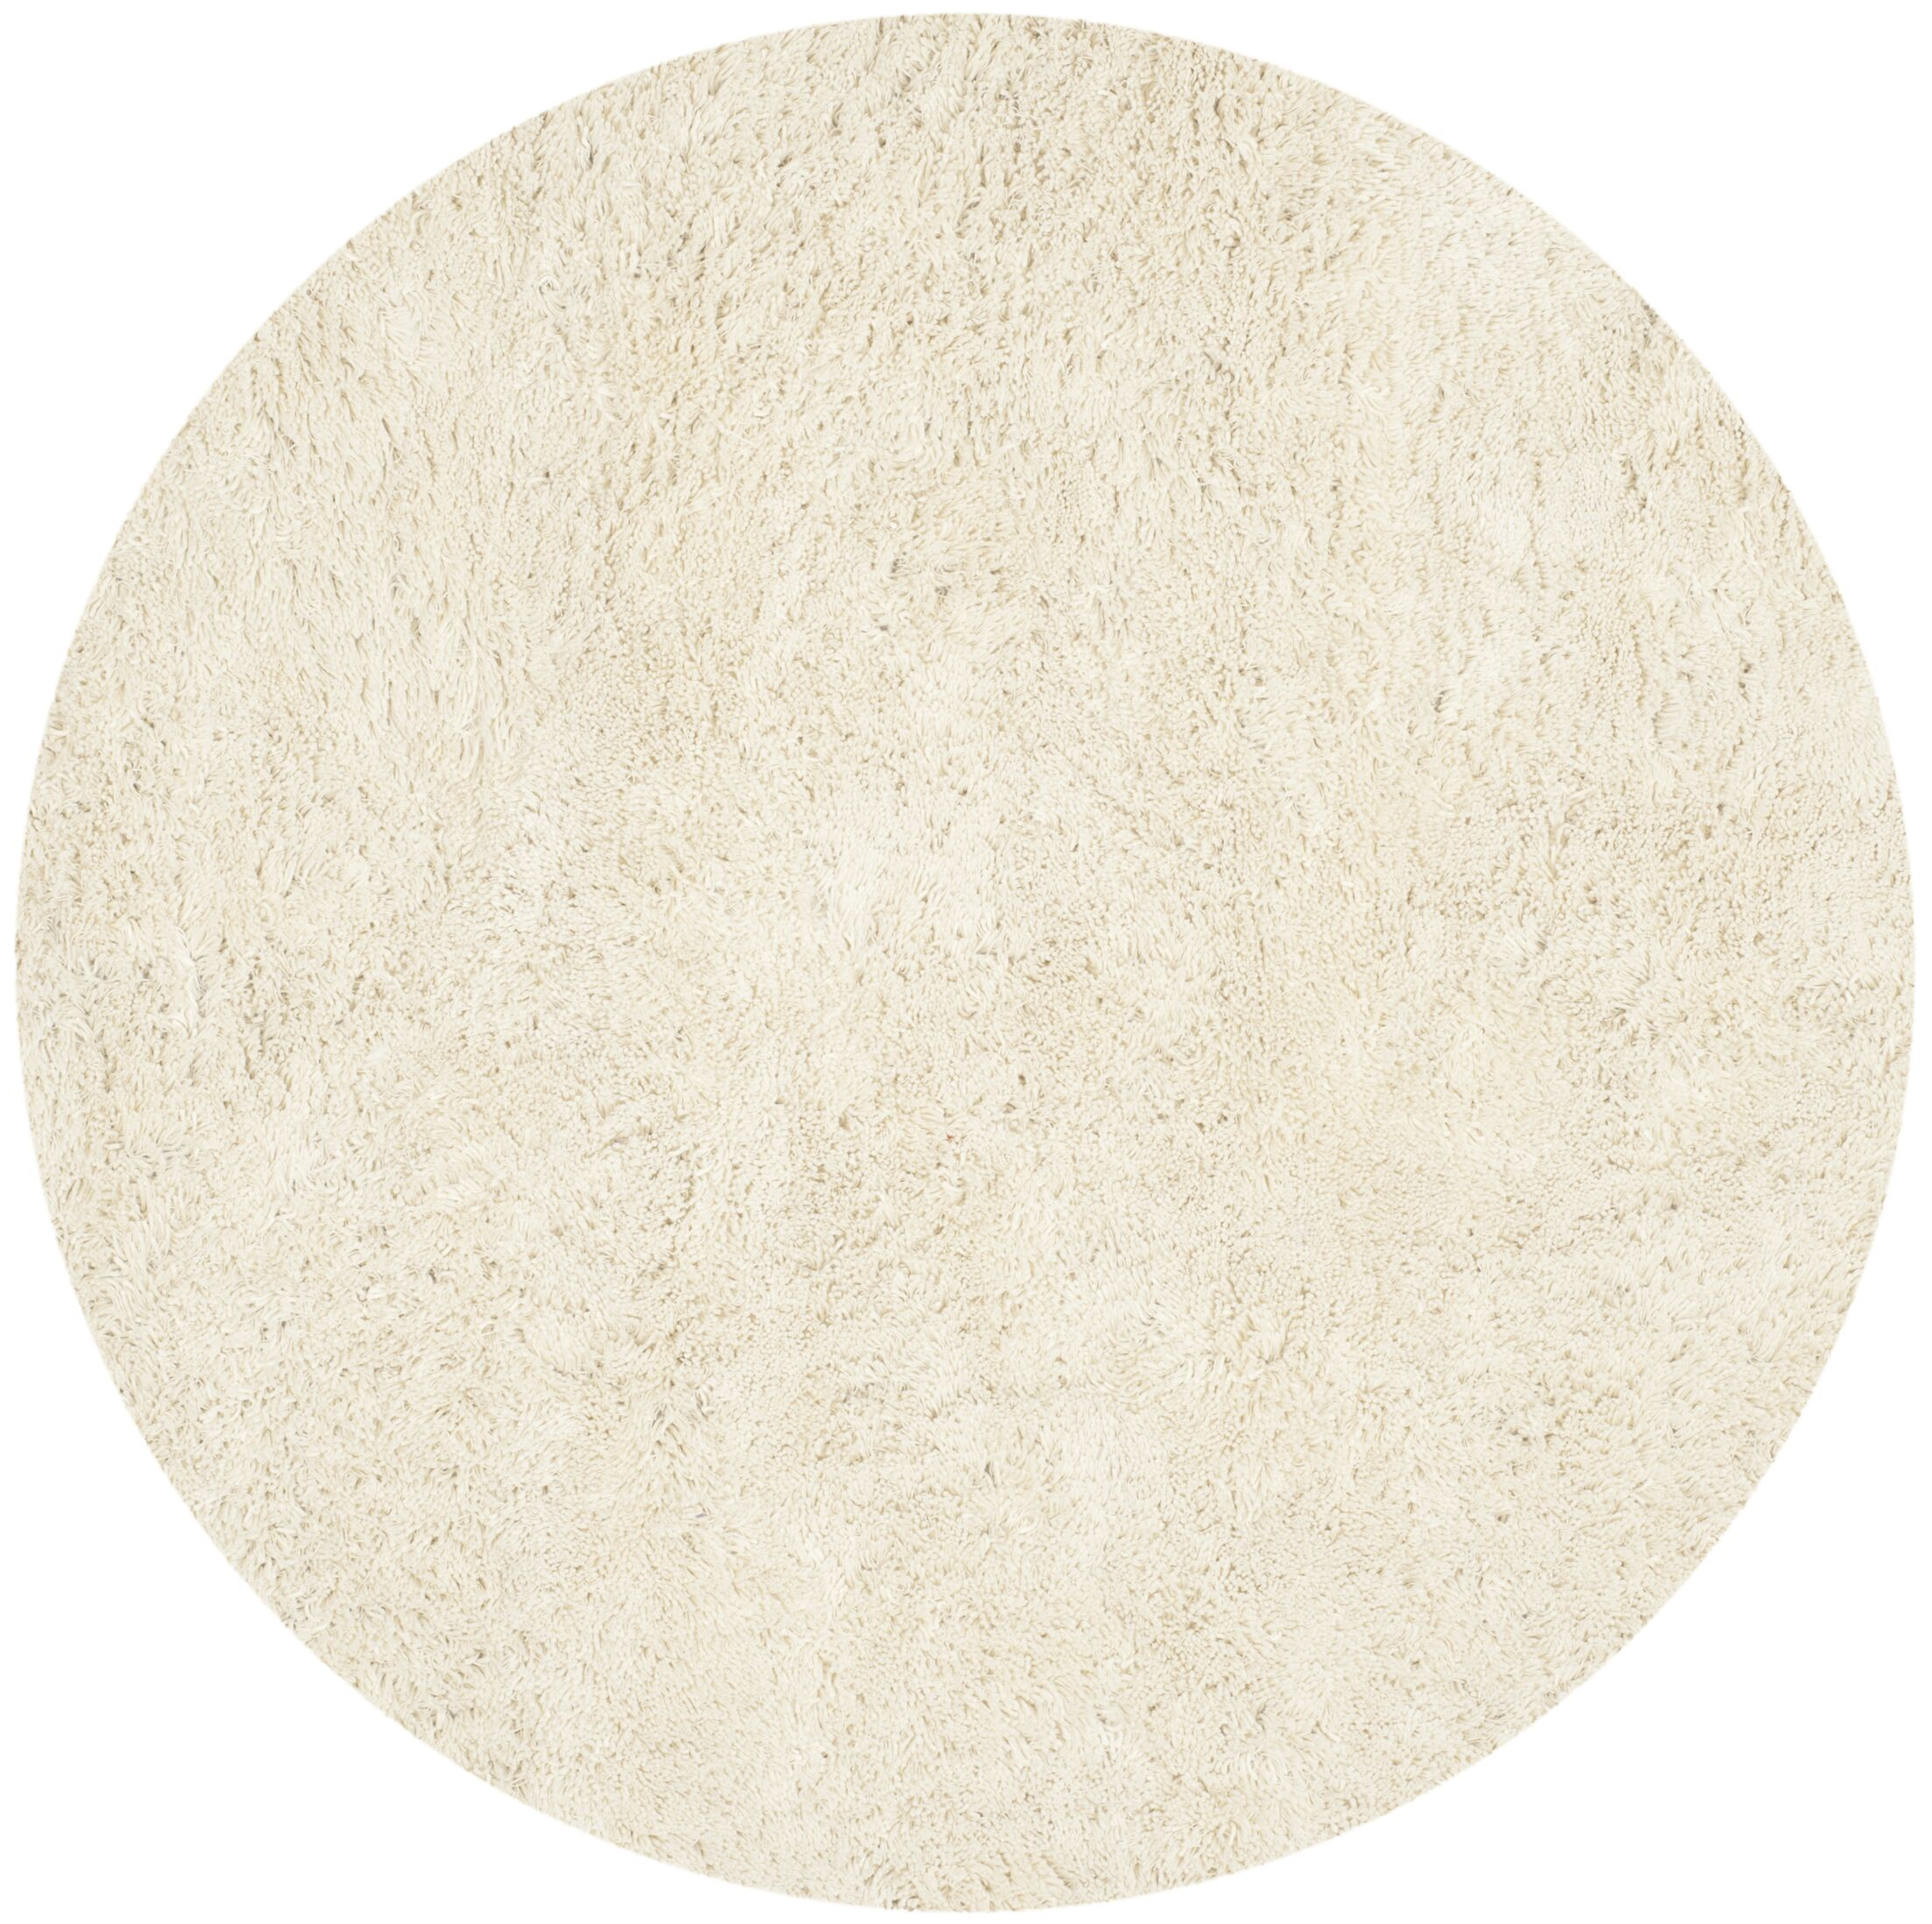 Starr Hill Ivory Area Rug Rug Size: Round 4'